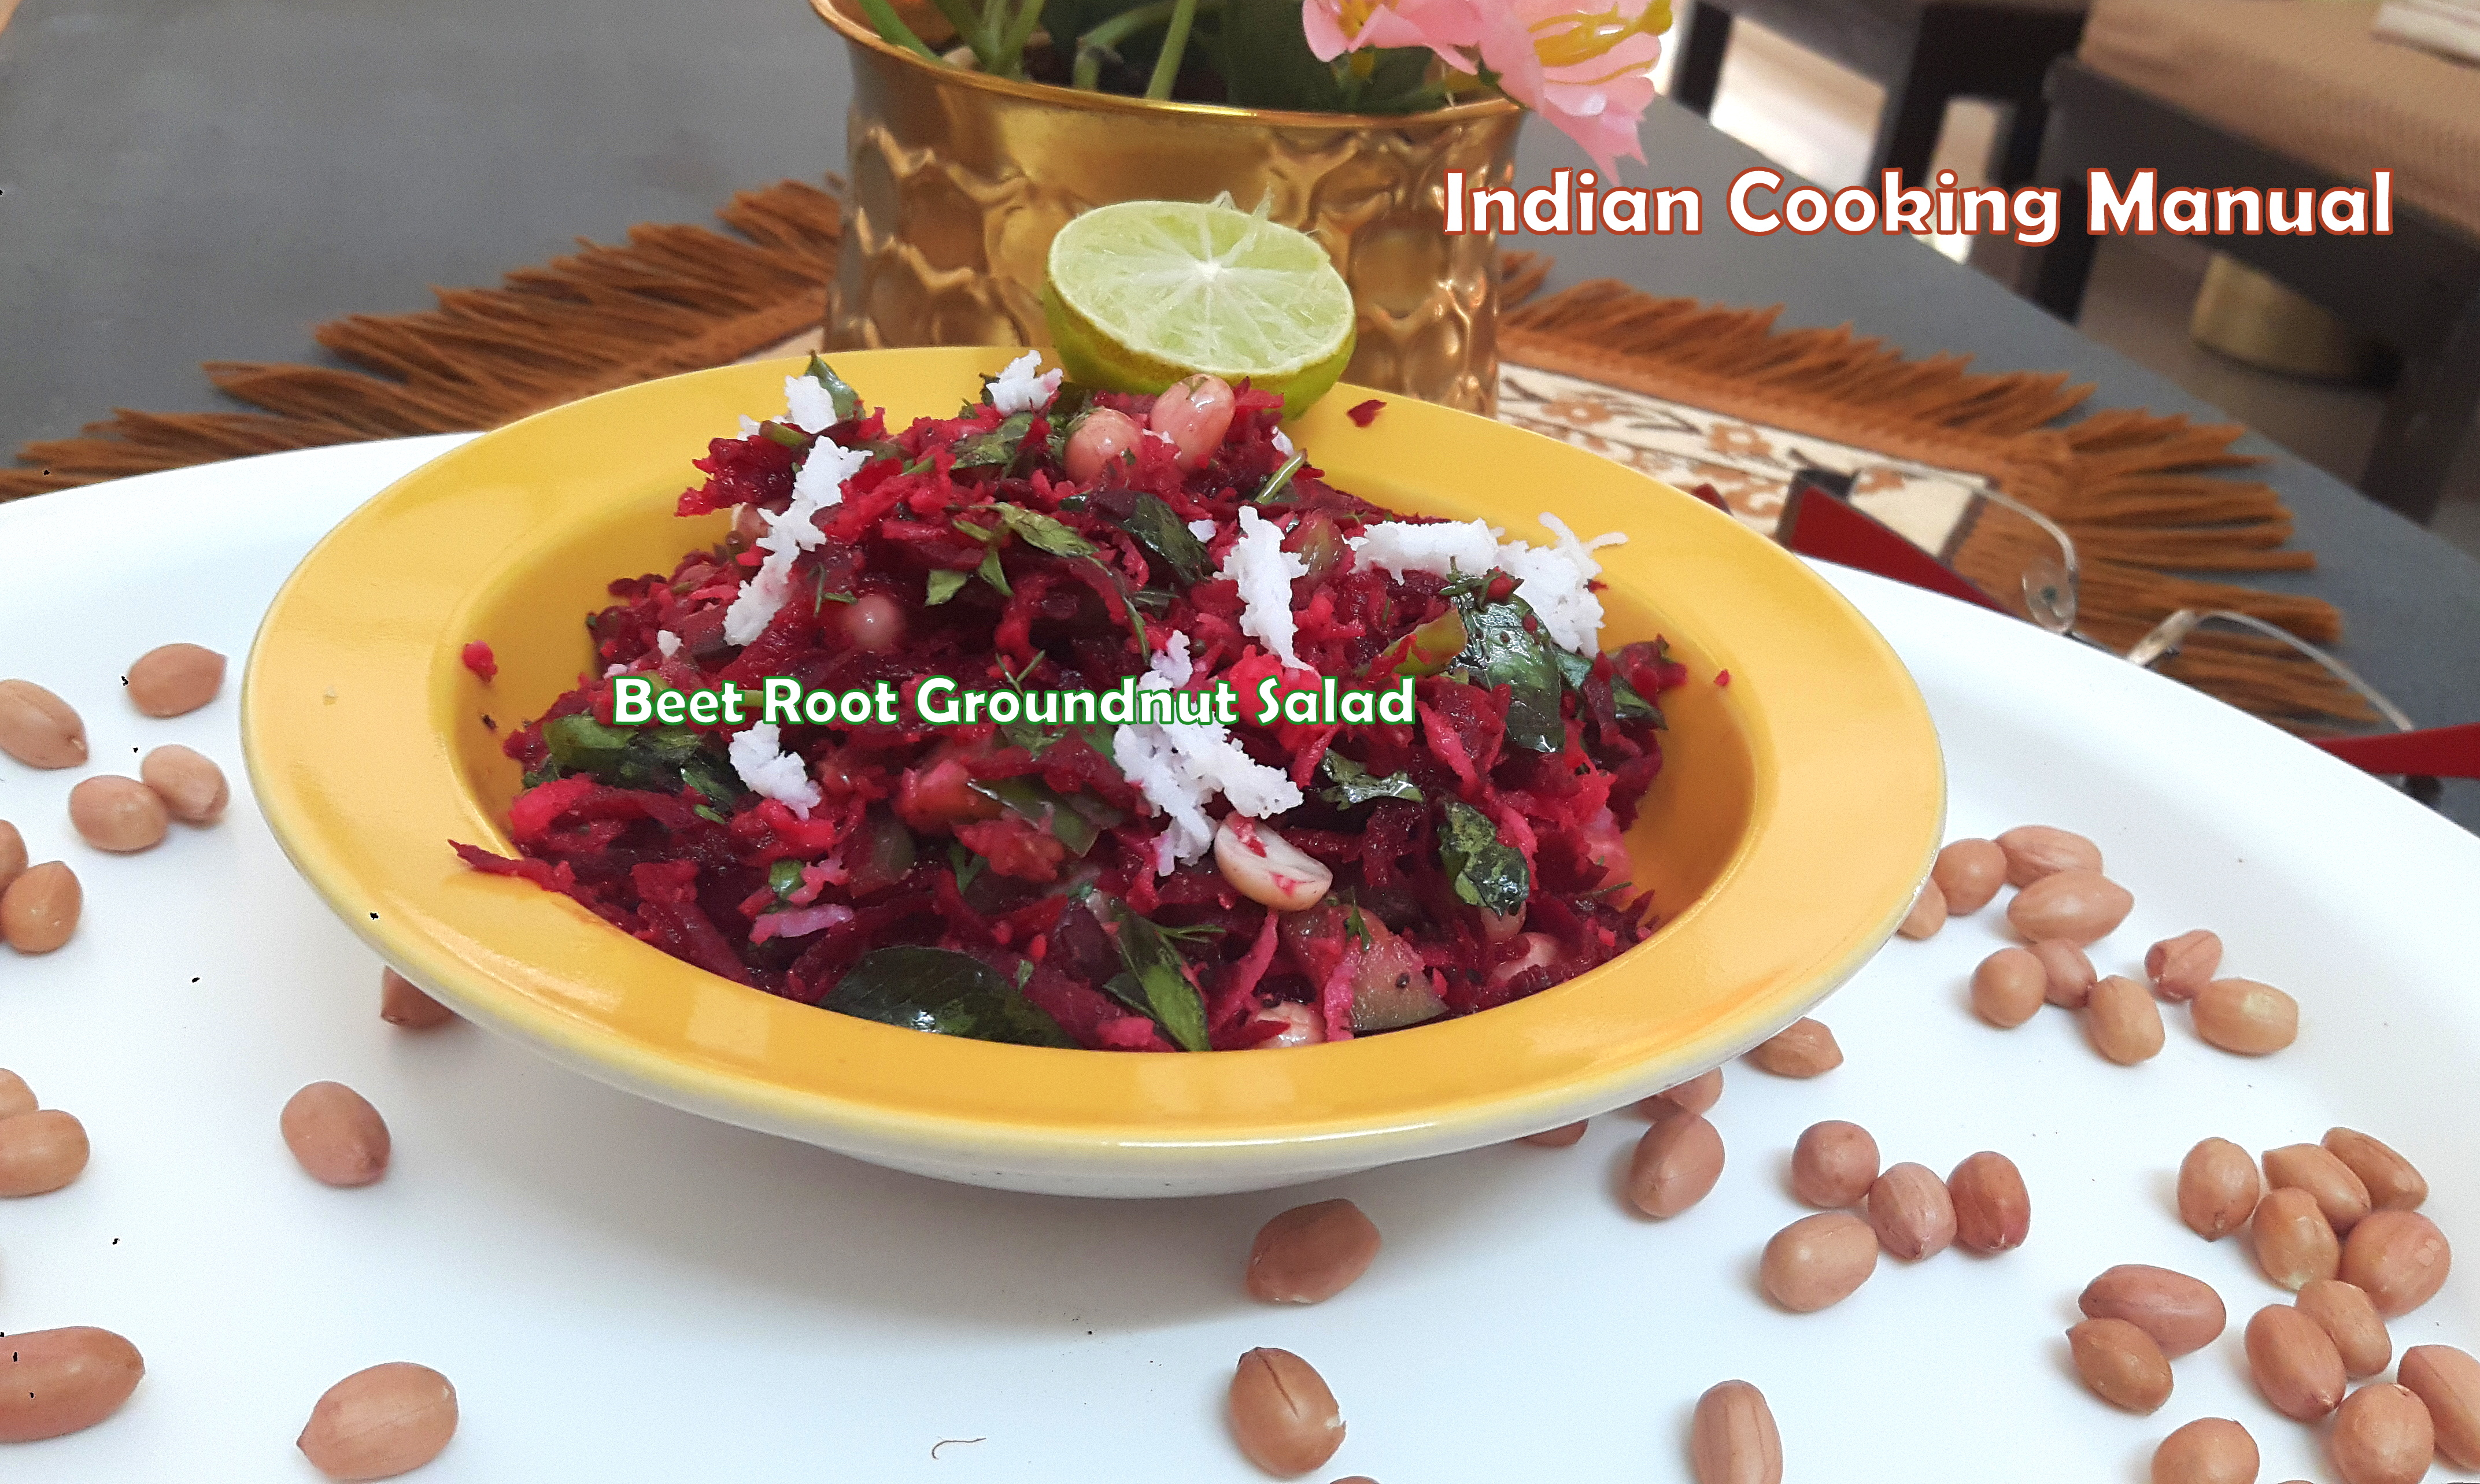 Beet Root Groundnut Salad